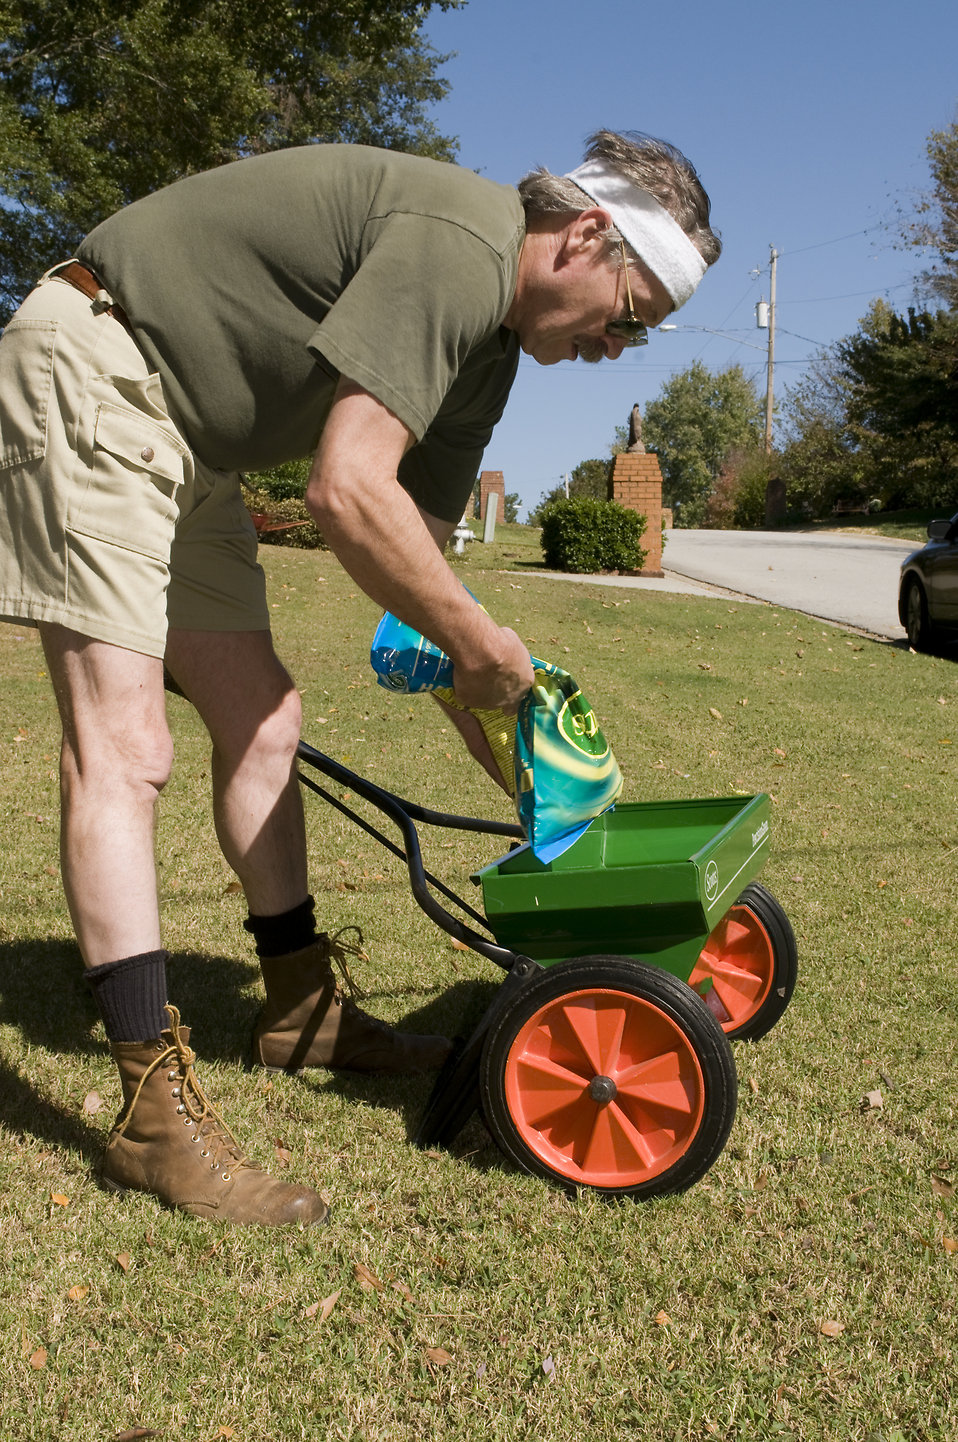 A man fertilizing his lawn with a spreader : Free Stock Photo